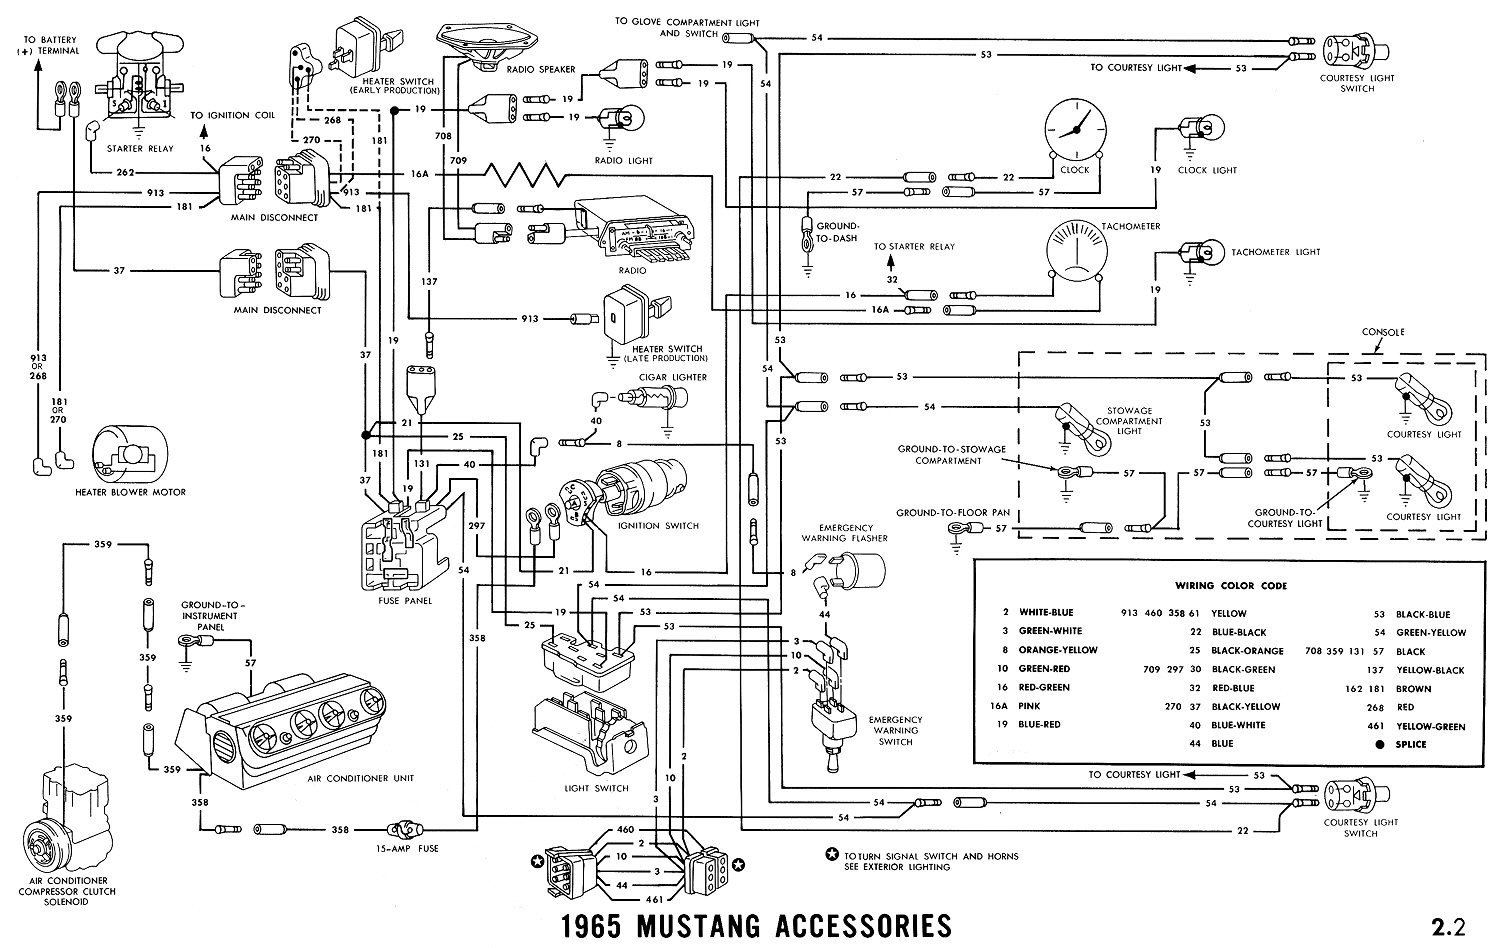 1965i 1965 mustang wiring diagrams average joe restoration 68 mustang wiring harness at gsmportal.co